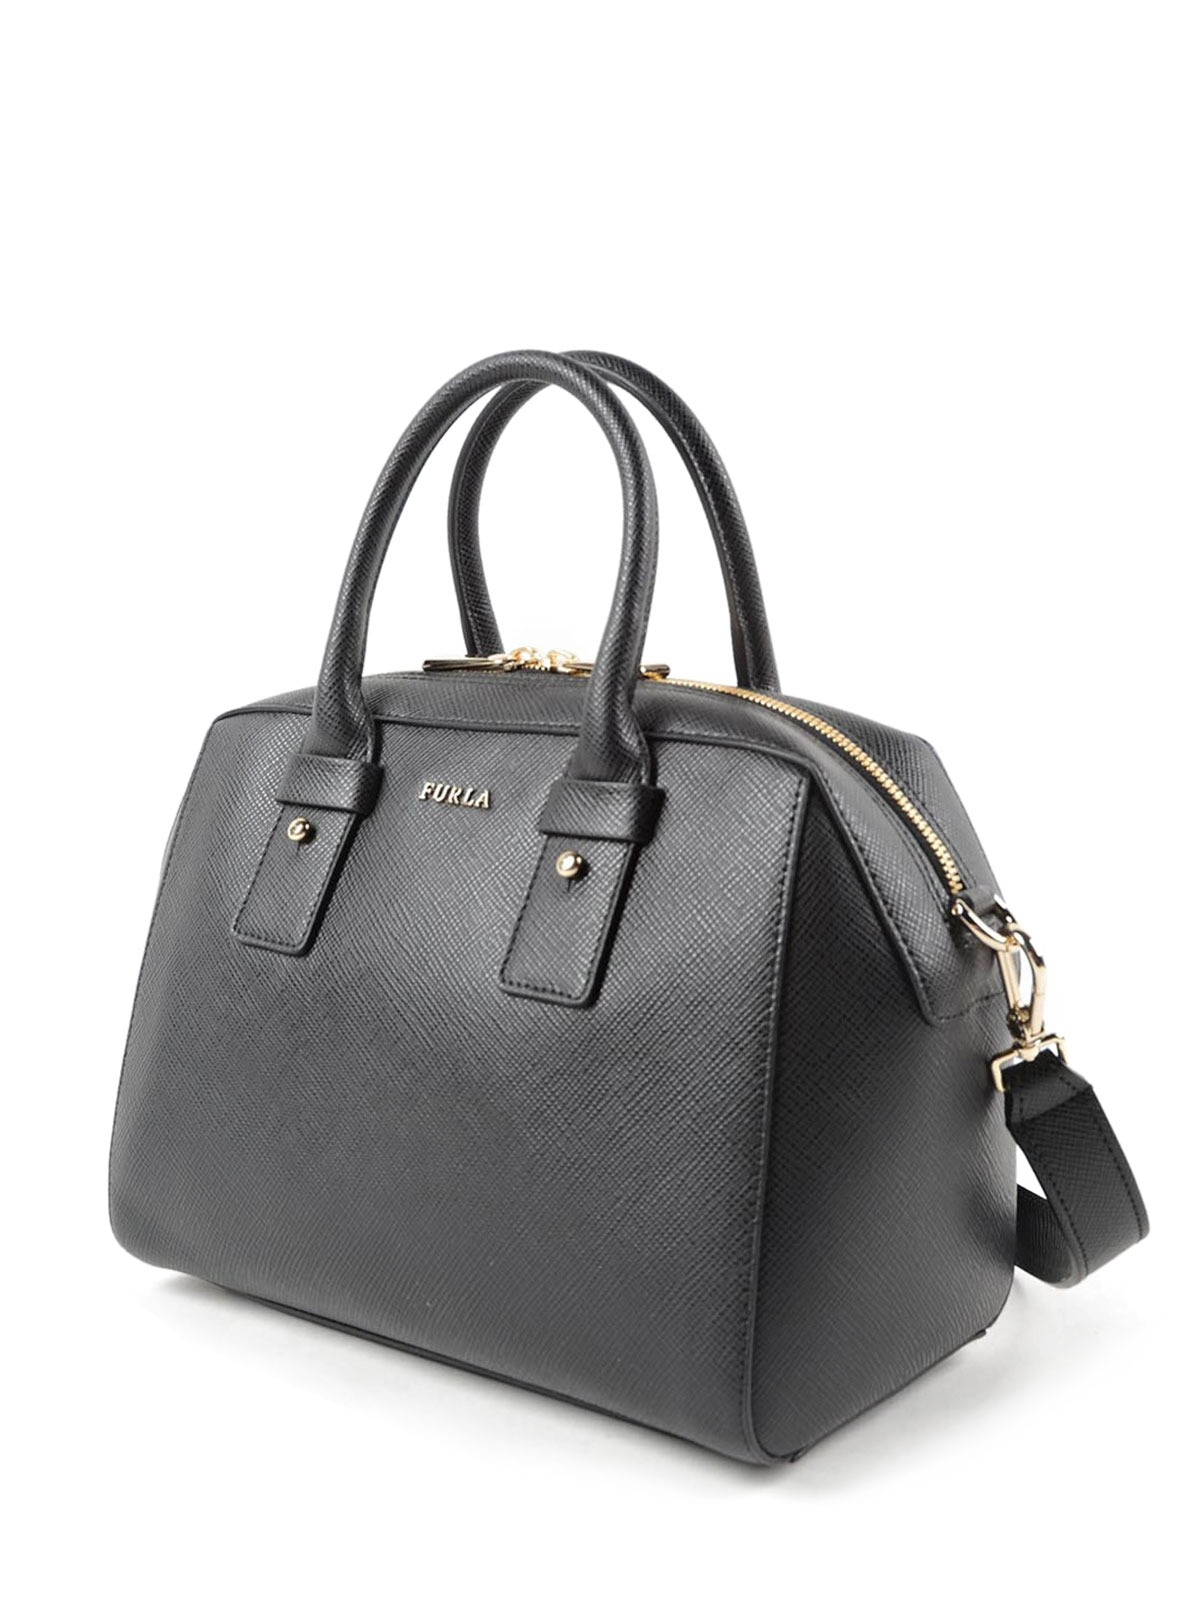 Furla Bowling Bags Online Allegra S Leather Bag